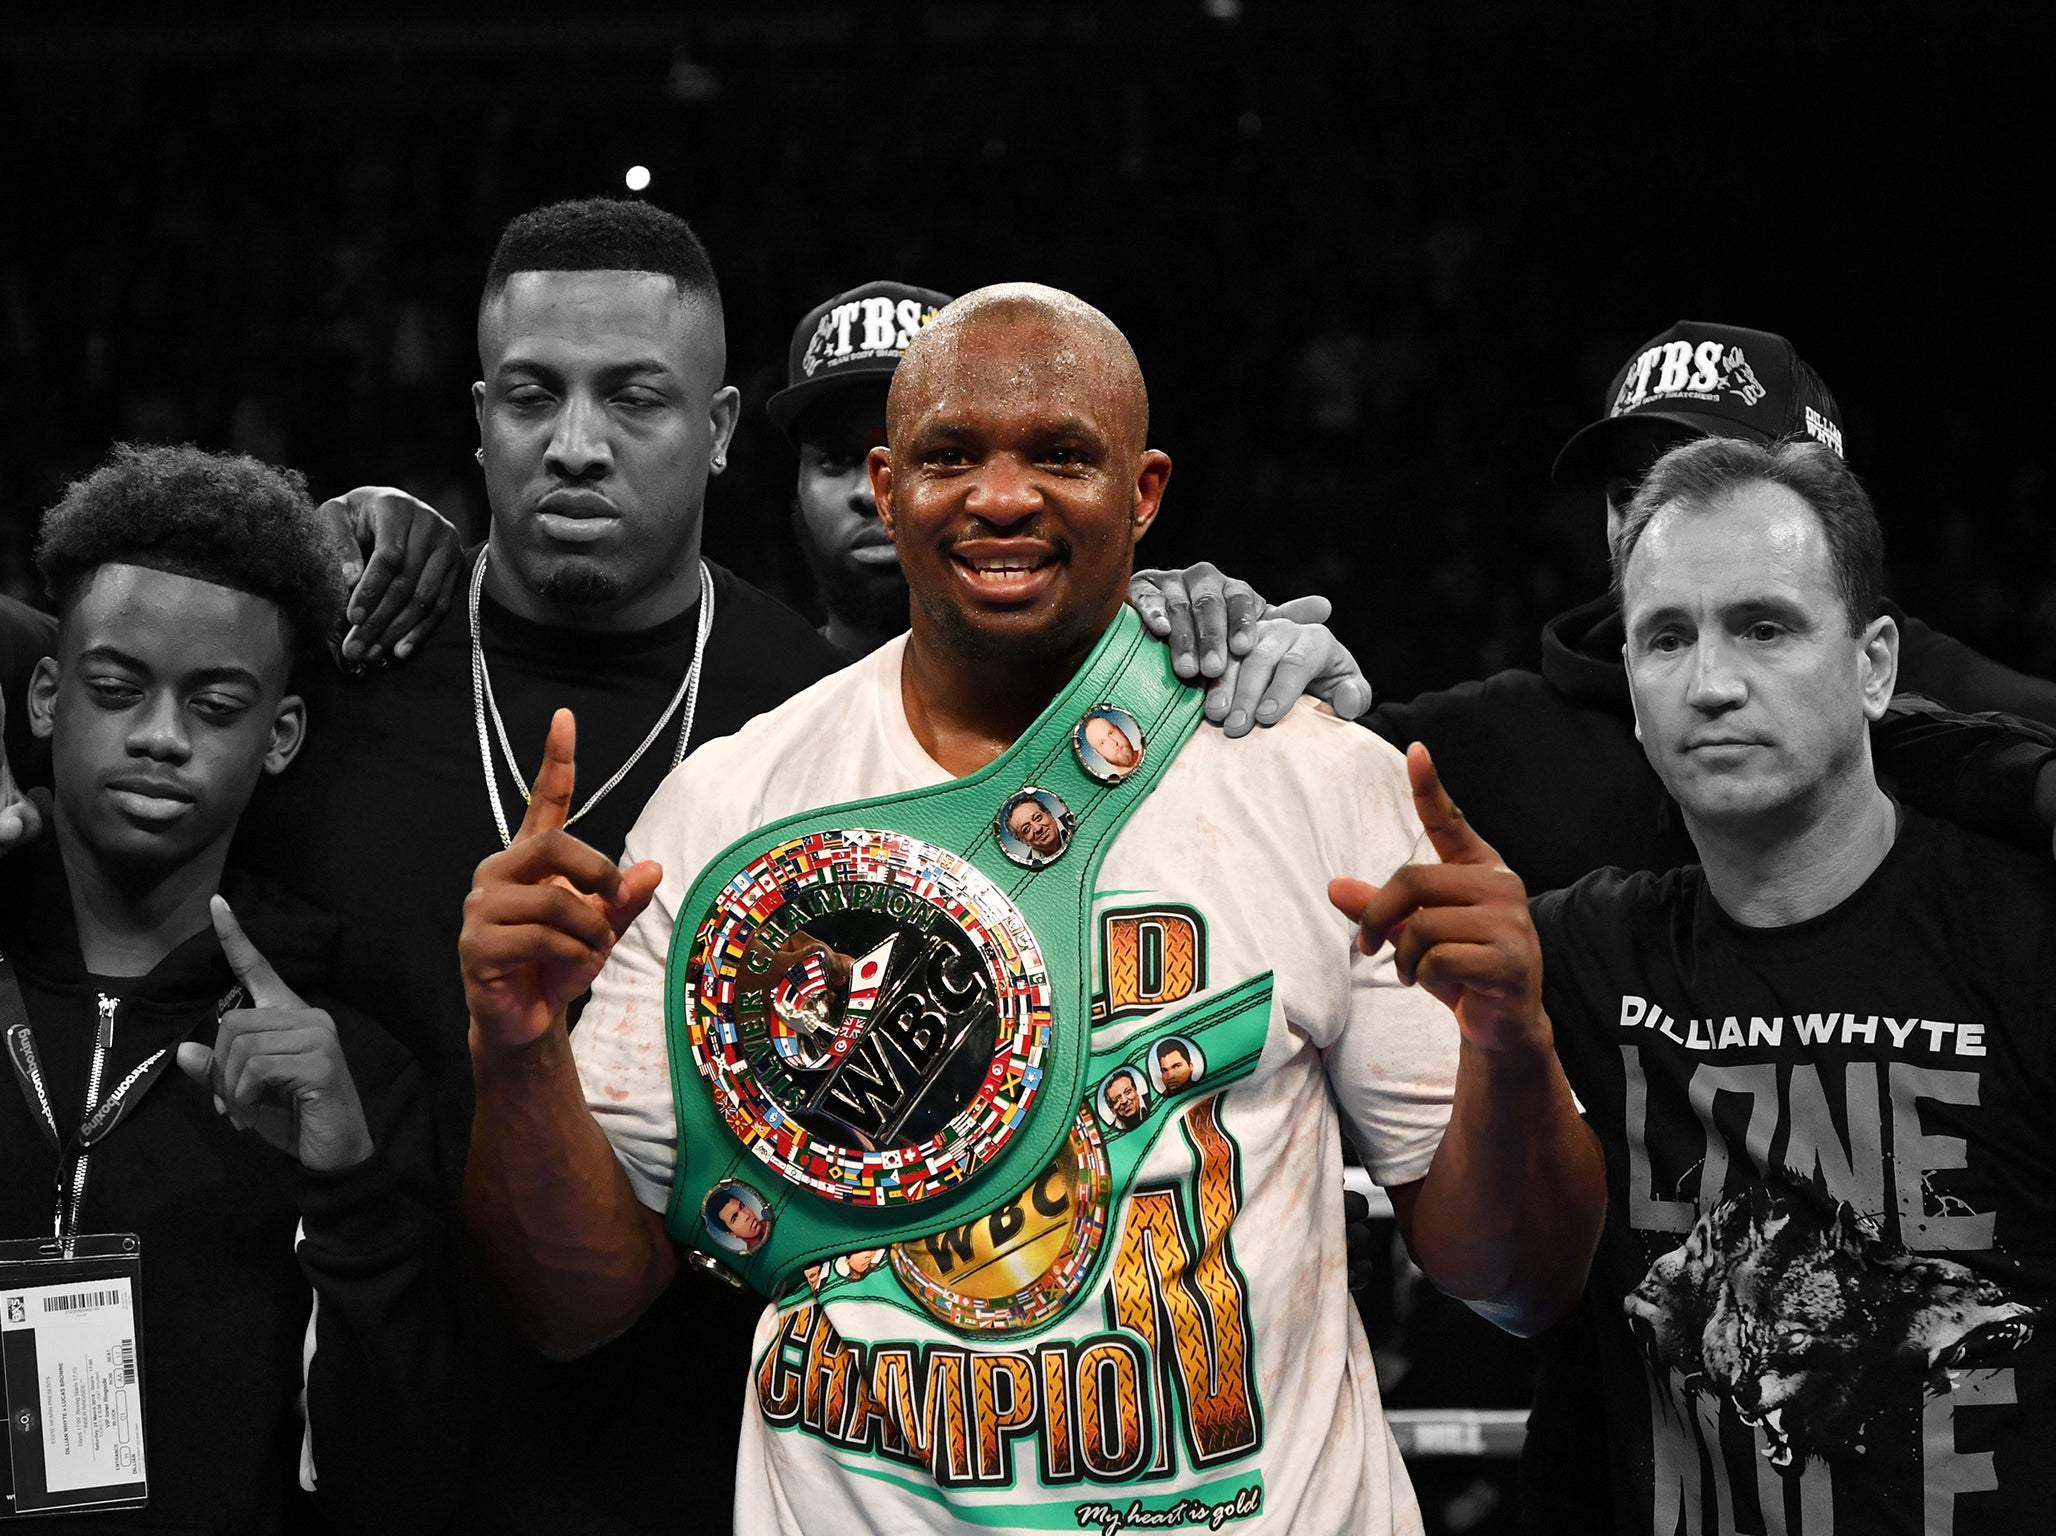 9ae368a3b Dillian Whyte - latest news, breaking stories and comment - The ...